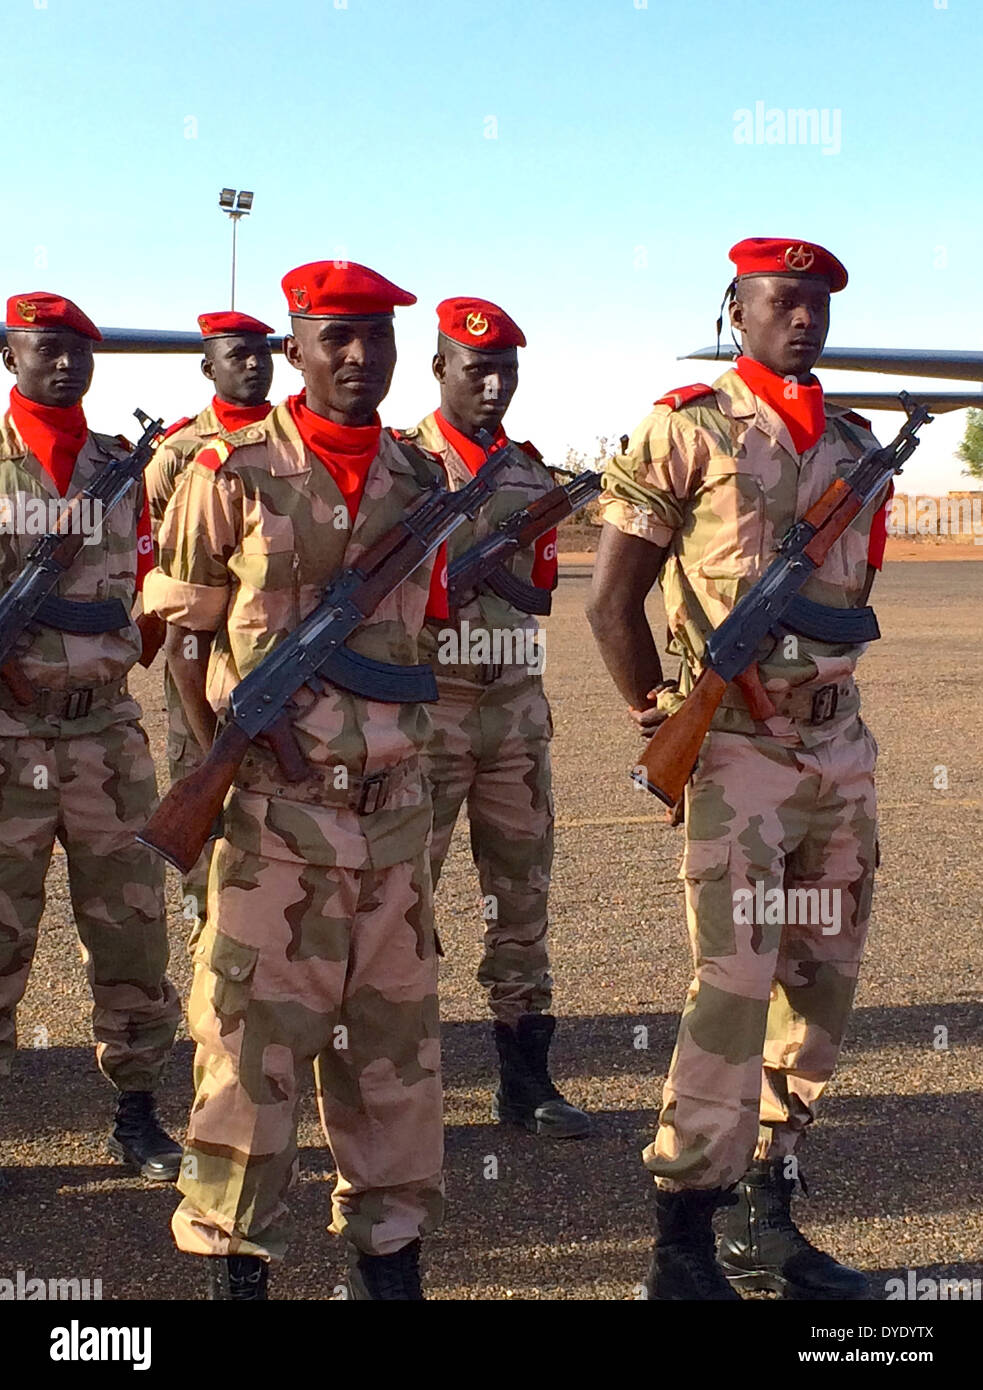 Nigerian troops in dress uniforms during the closing ceremony for joint exercise Flintlock 2014 March 9, 2014 in Niamey, Niger. - Stock Image